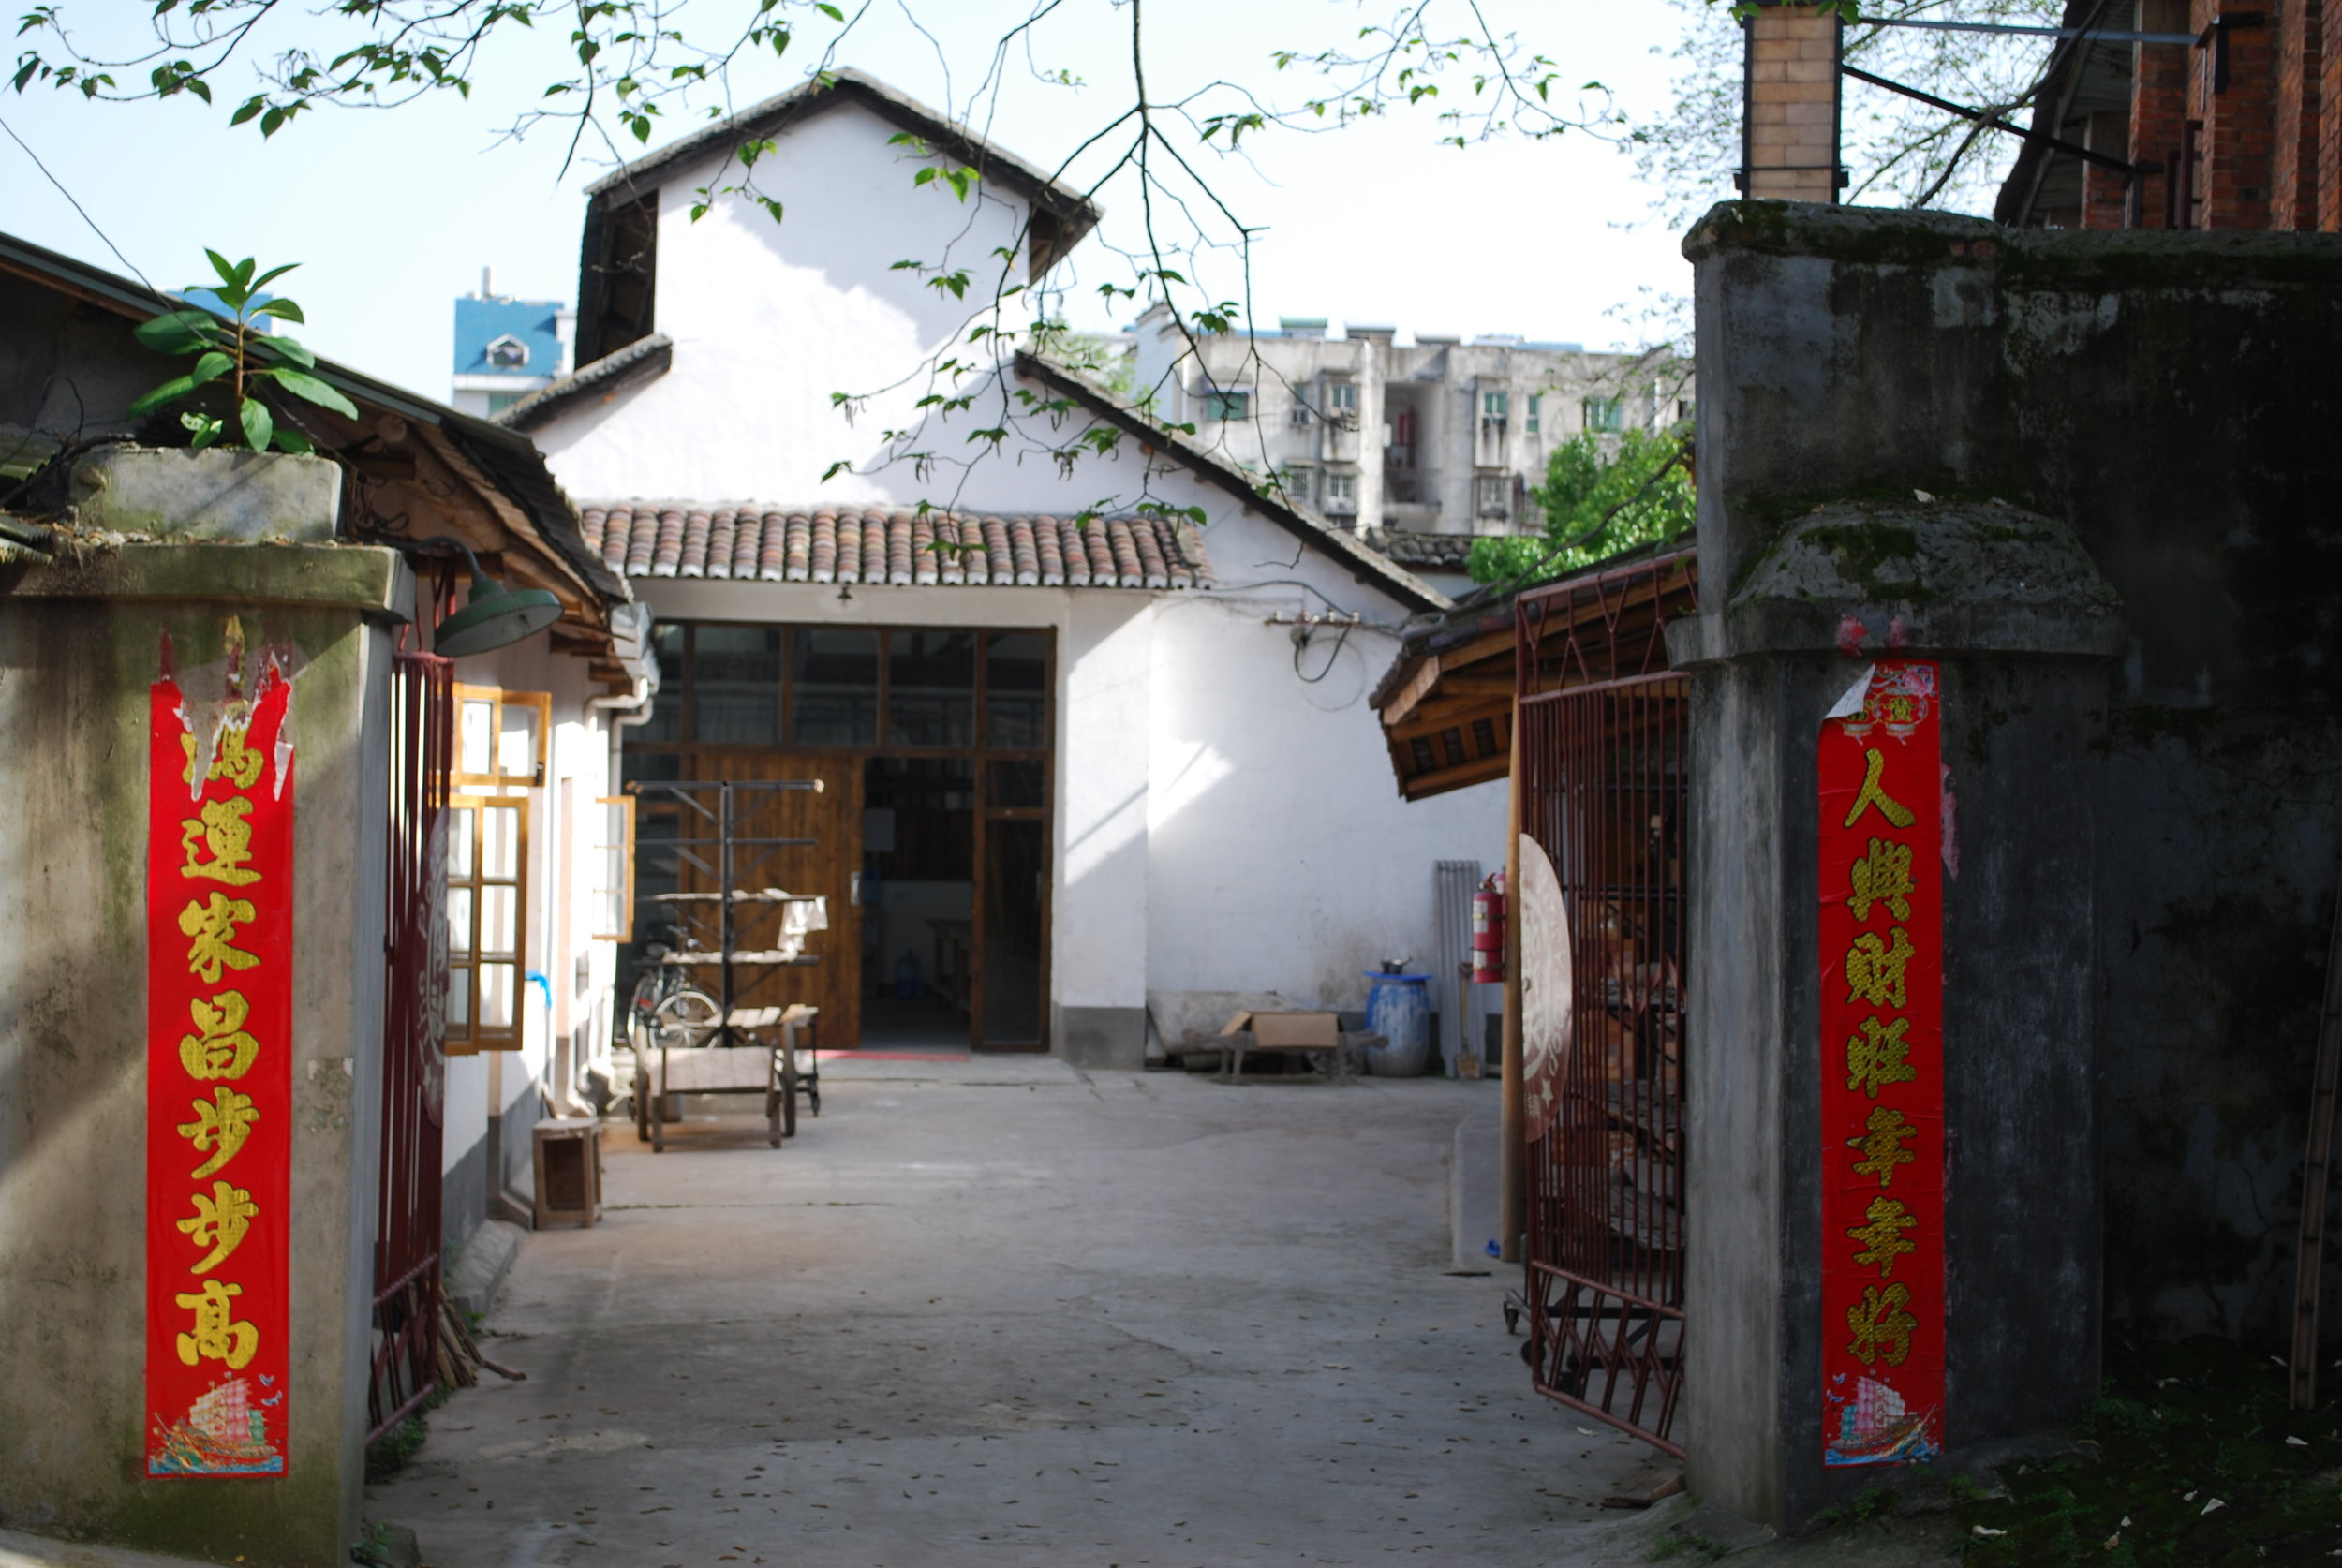 Jingdezhen PWS Design Studio entrance